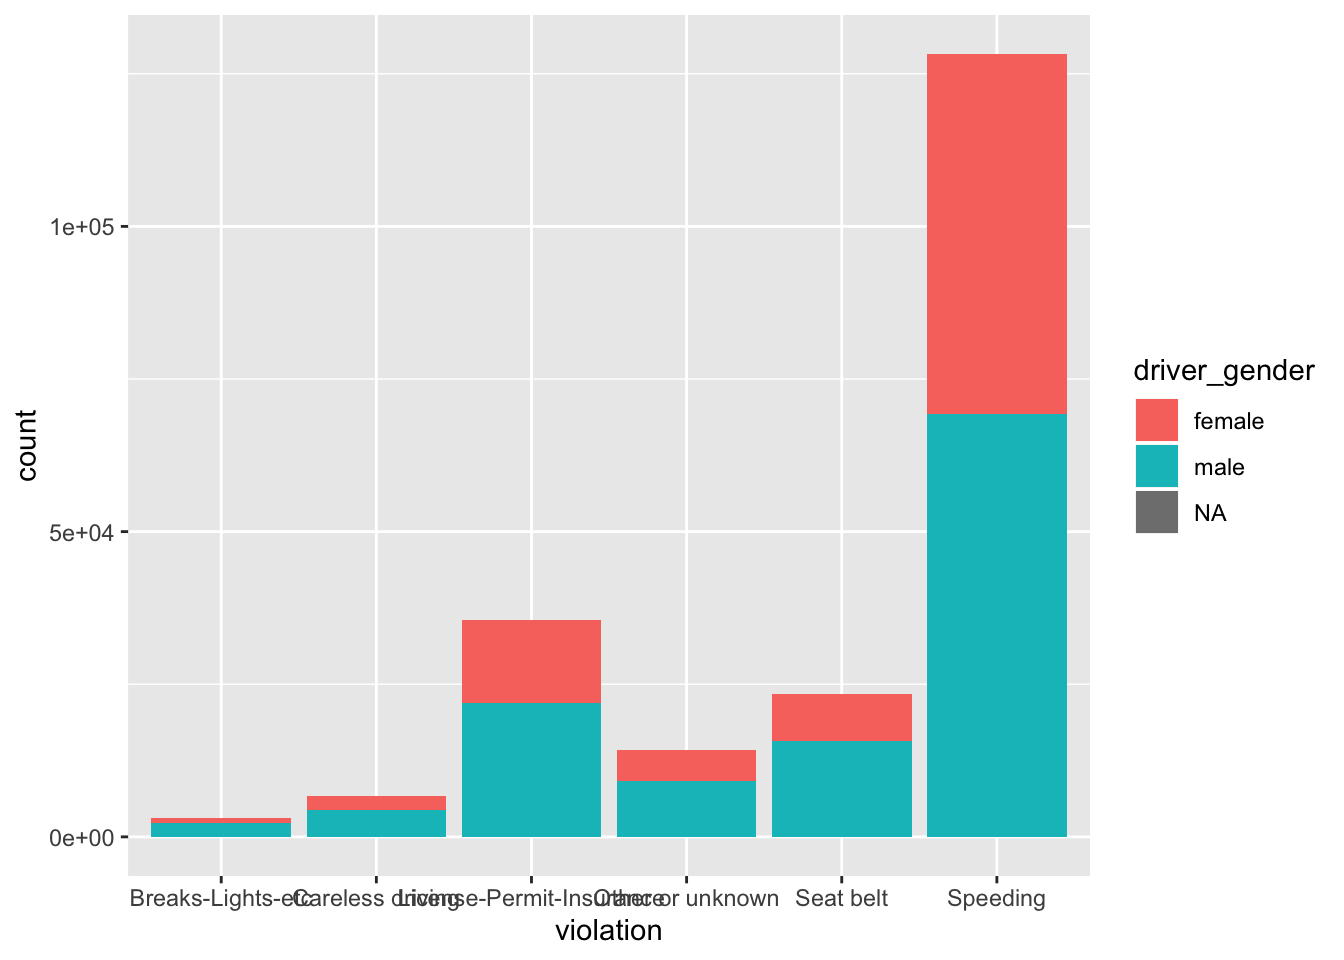 Chapter 3 Data Visualization with ggplot2 | Data Wrangling with R